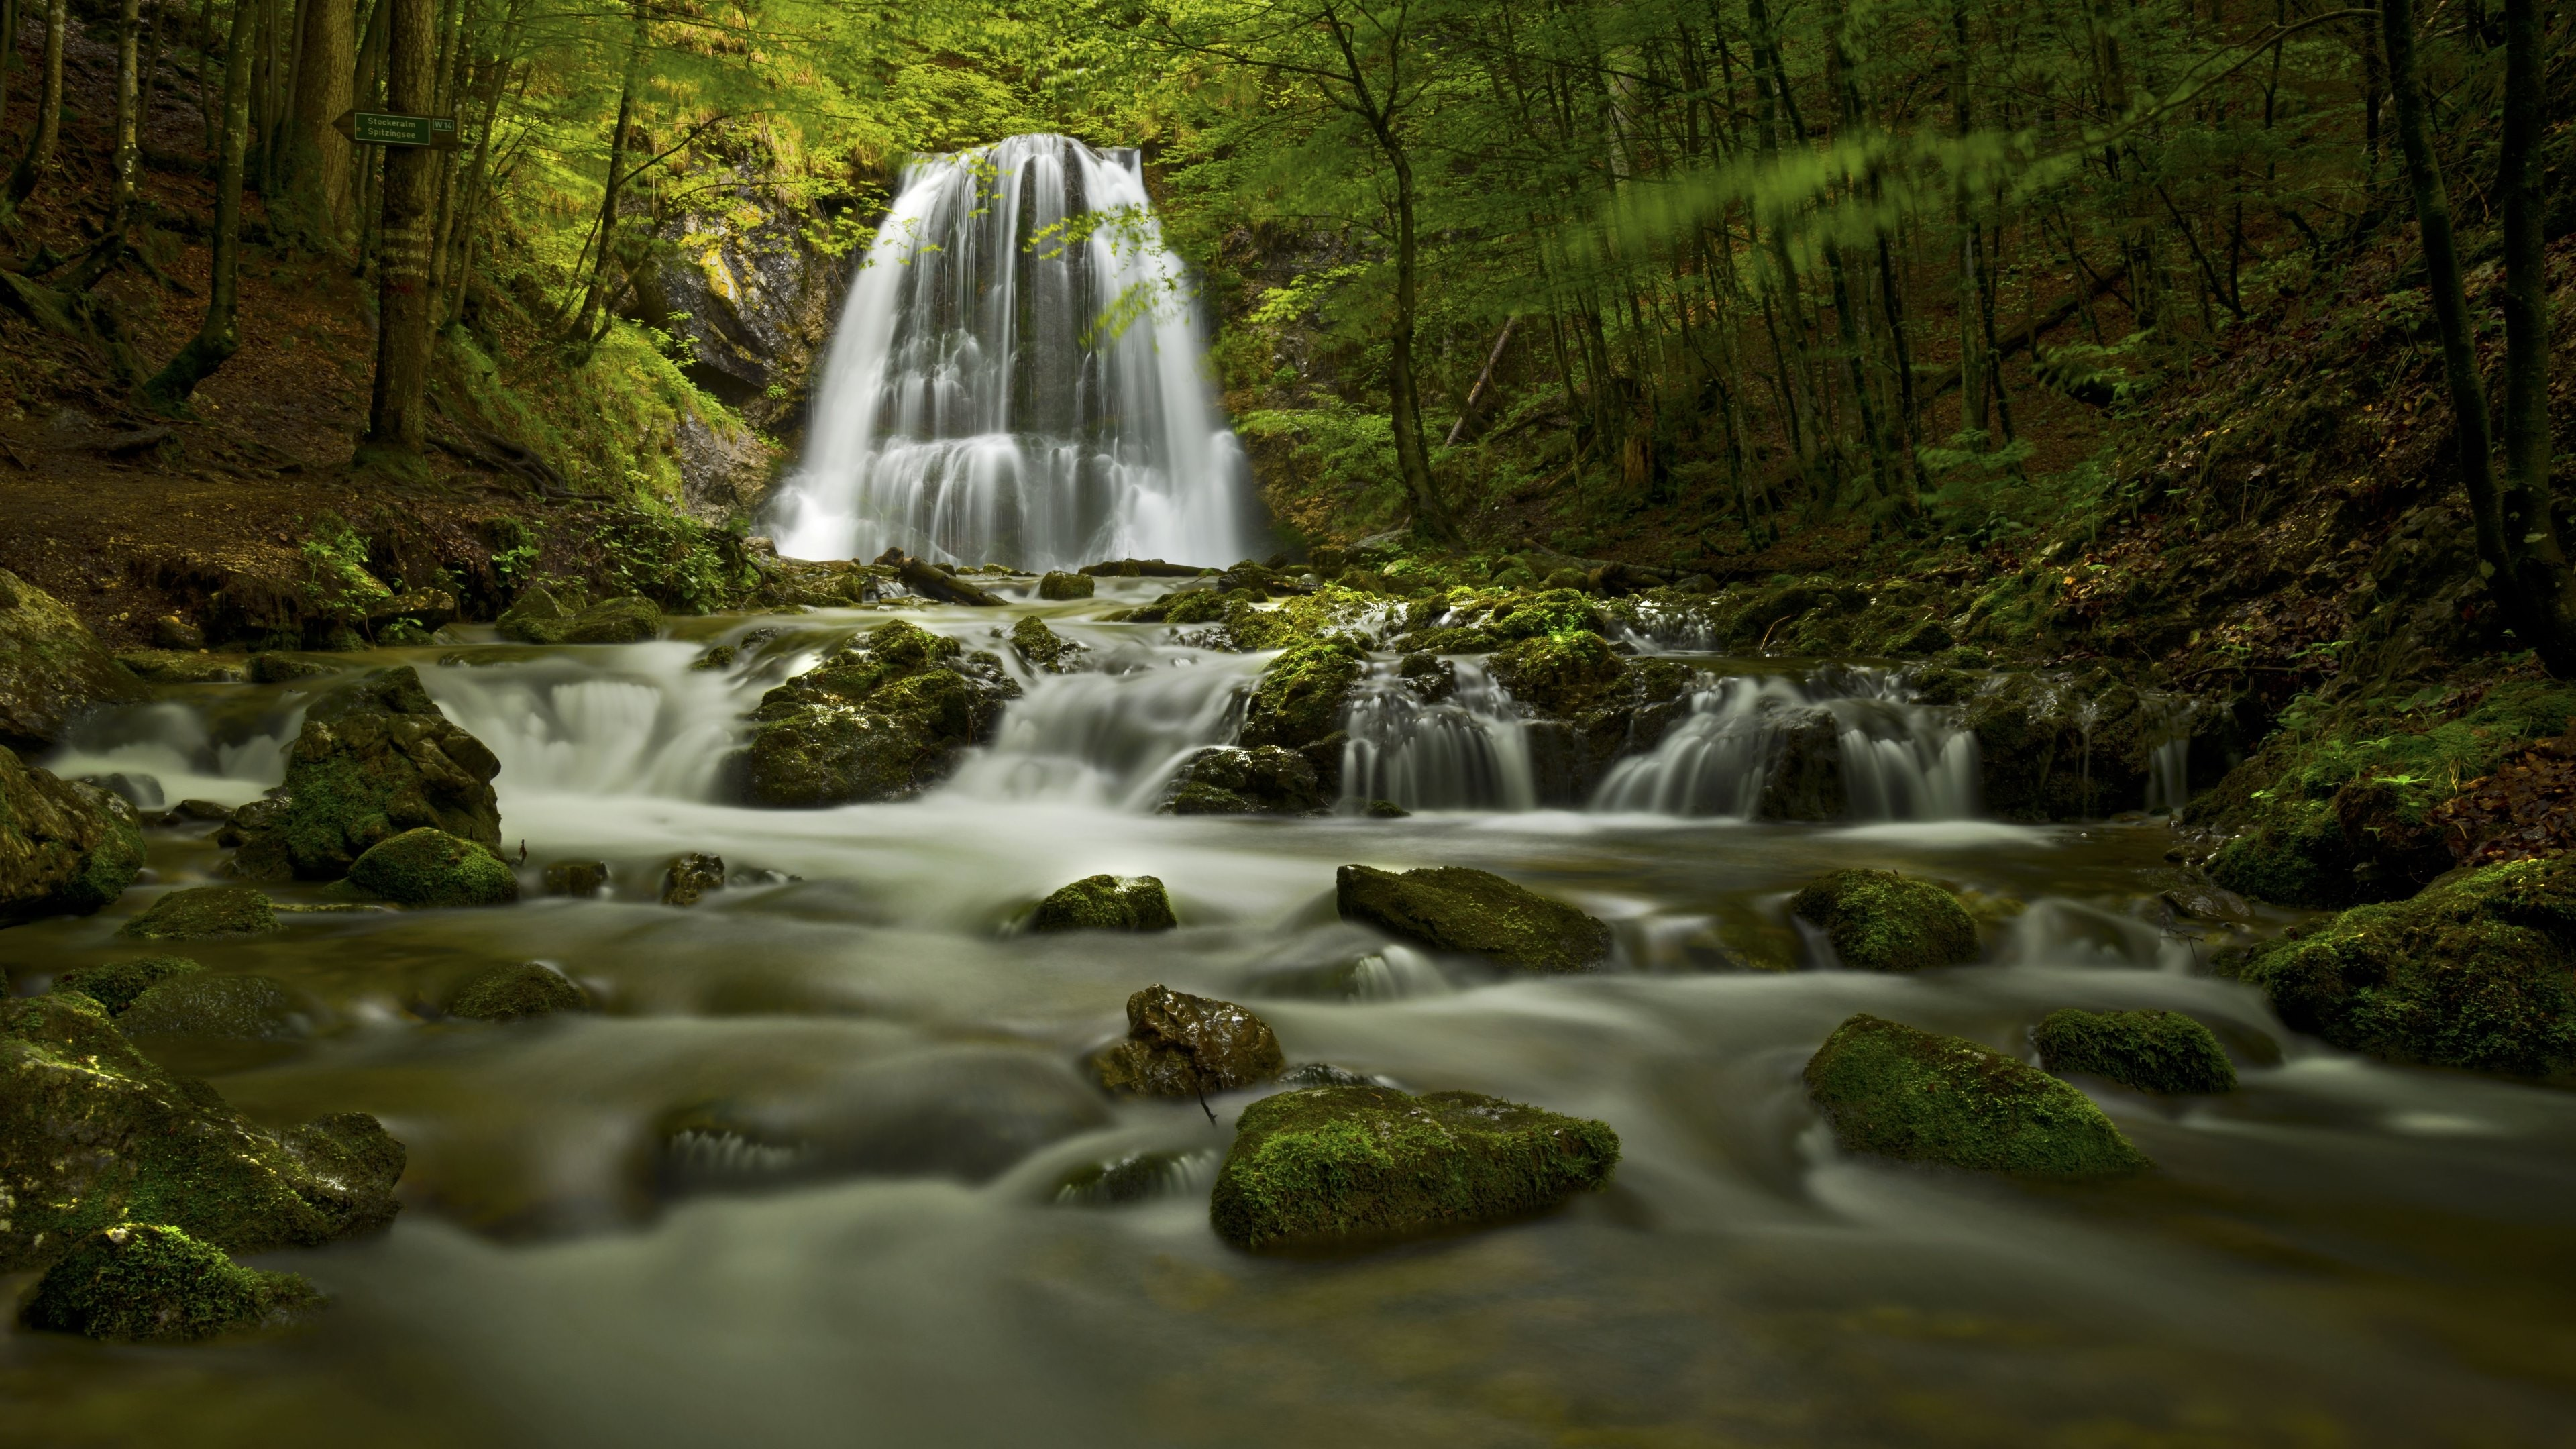 General 3840x2160 water rock nature forest waterfall trees